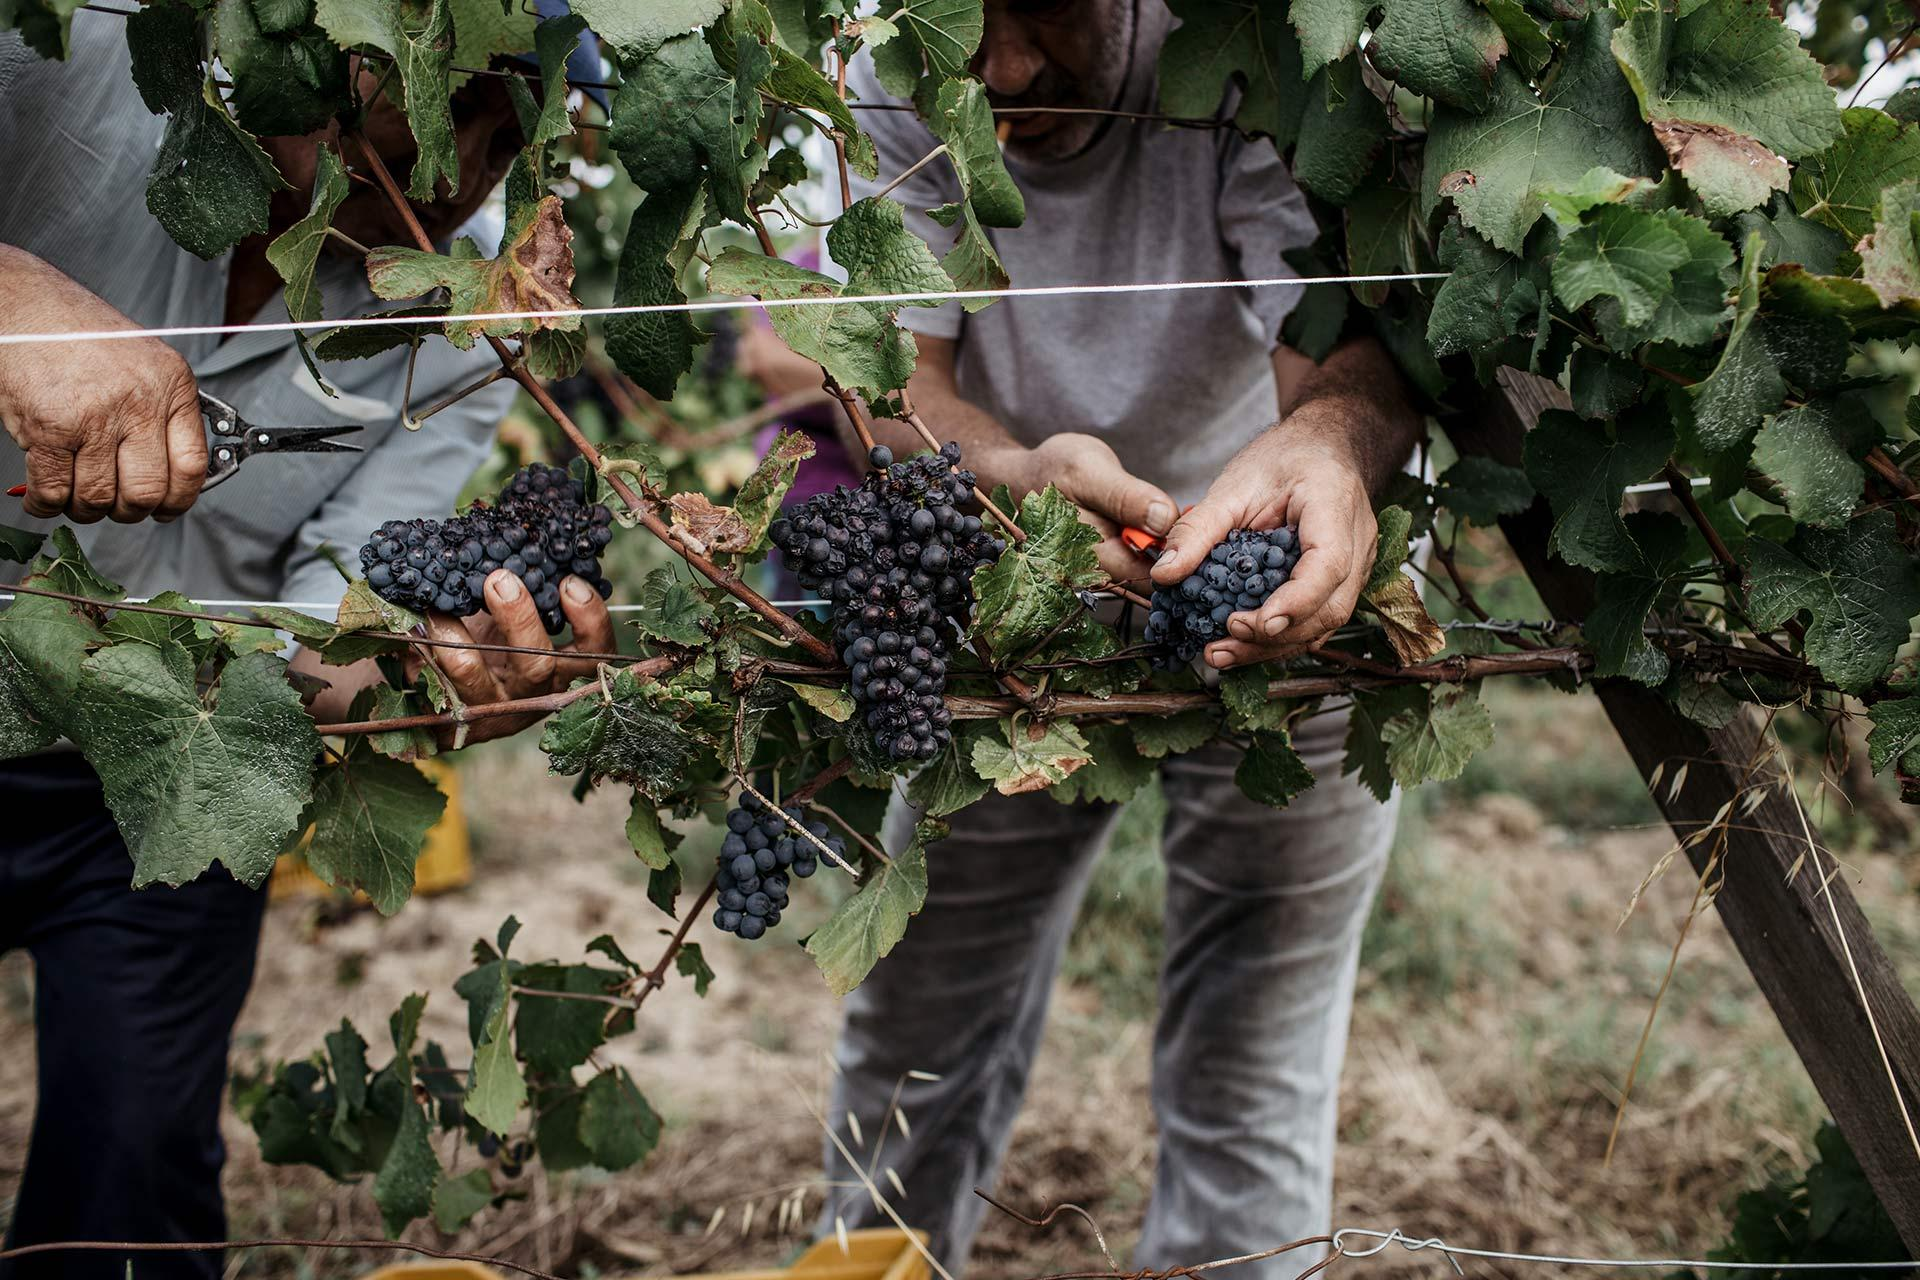 People collecting grapes